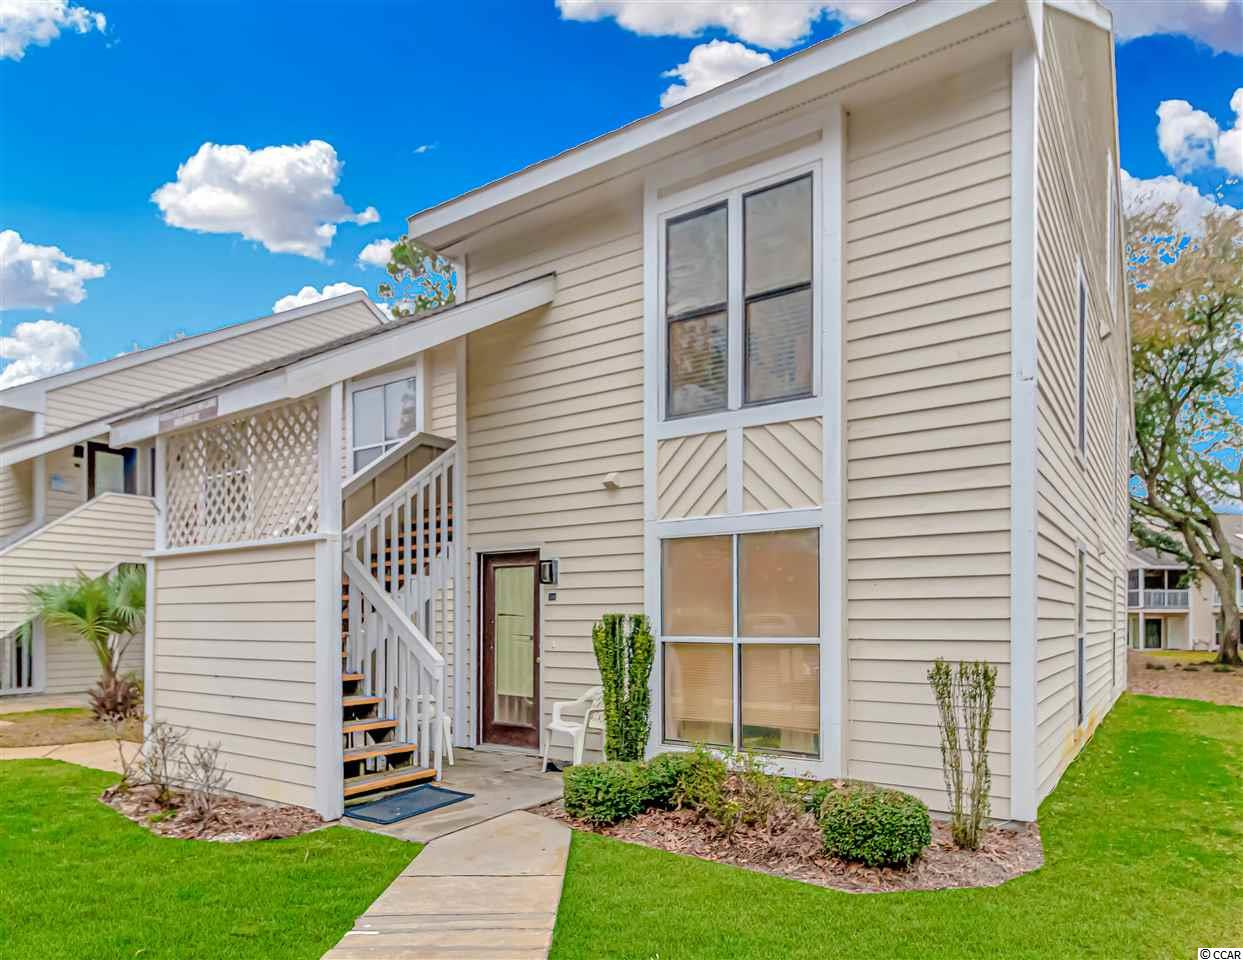 This unit located in the Little River Inn subdivision has it all. The unit is on the second story of this complex and is a two story condo. Up the stairwell, your meant with a freshly painted front door and a nice, sturdy storm door addition. In the unit the stairs are located by the front door, to the left is the main hallway. All new tile floors through out the first floor. The main floor has a full bathroom with shower/tub combo, newly renovated with fresh paint. Next to the bathroom is the first floor bedroom, that comfortably fits a queen bed, new window treatments and fresh paint. Down the hallway further to the rear of the unit is the updated kitchen, granite counter tops and new appliances with a three year warranty. The Kitchen has two pantries, garbage disposal, and a breakfast bar. Right off the kitchen/dinning space combo is the living room. The living room has high vaulted ceilings with skylights making the area seem bright and open concept. Off the living room is a large walk in storage closet and a 3 season room that is enclosed with new glass window. This balcony has the potential to be heated and cooled, with a tile floor as well. The washer/dryer stackable unit would be sold with the property. It is enclosed in a closet on the main floor of the unit. Up the newly carpeted stairs is a upgraded second bathroom with a stand up shower, another large storage space and a closet. The second bedroom is a loft, and can double as an office/second living space. All carpeting throughout the second floor. This unit is located just before the North Myrtle Beach/Cherry Grove Bridge and is perfectly located new the Beaches, restaurants and shopping. The subdivision also has a pool with a hot tub and tennis court, everything at your convenience.